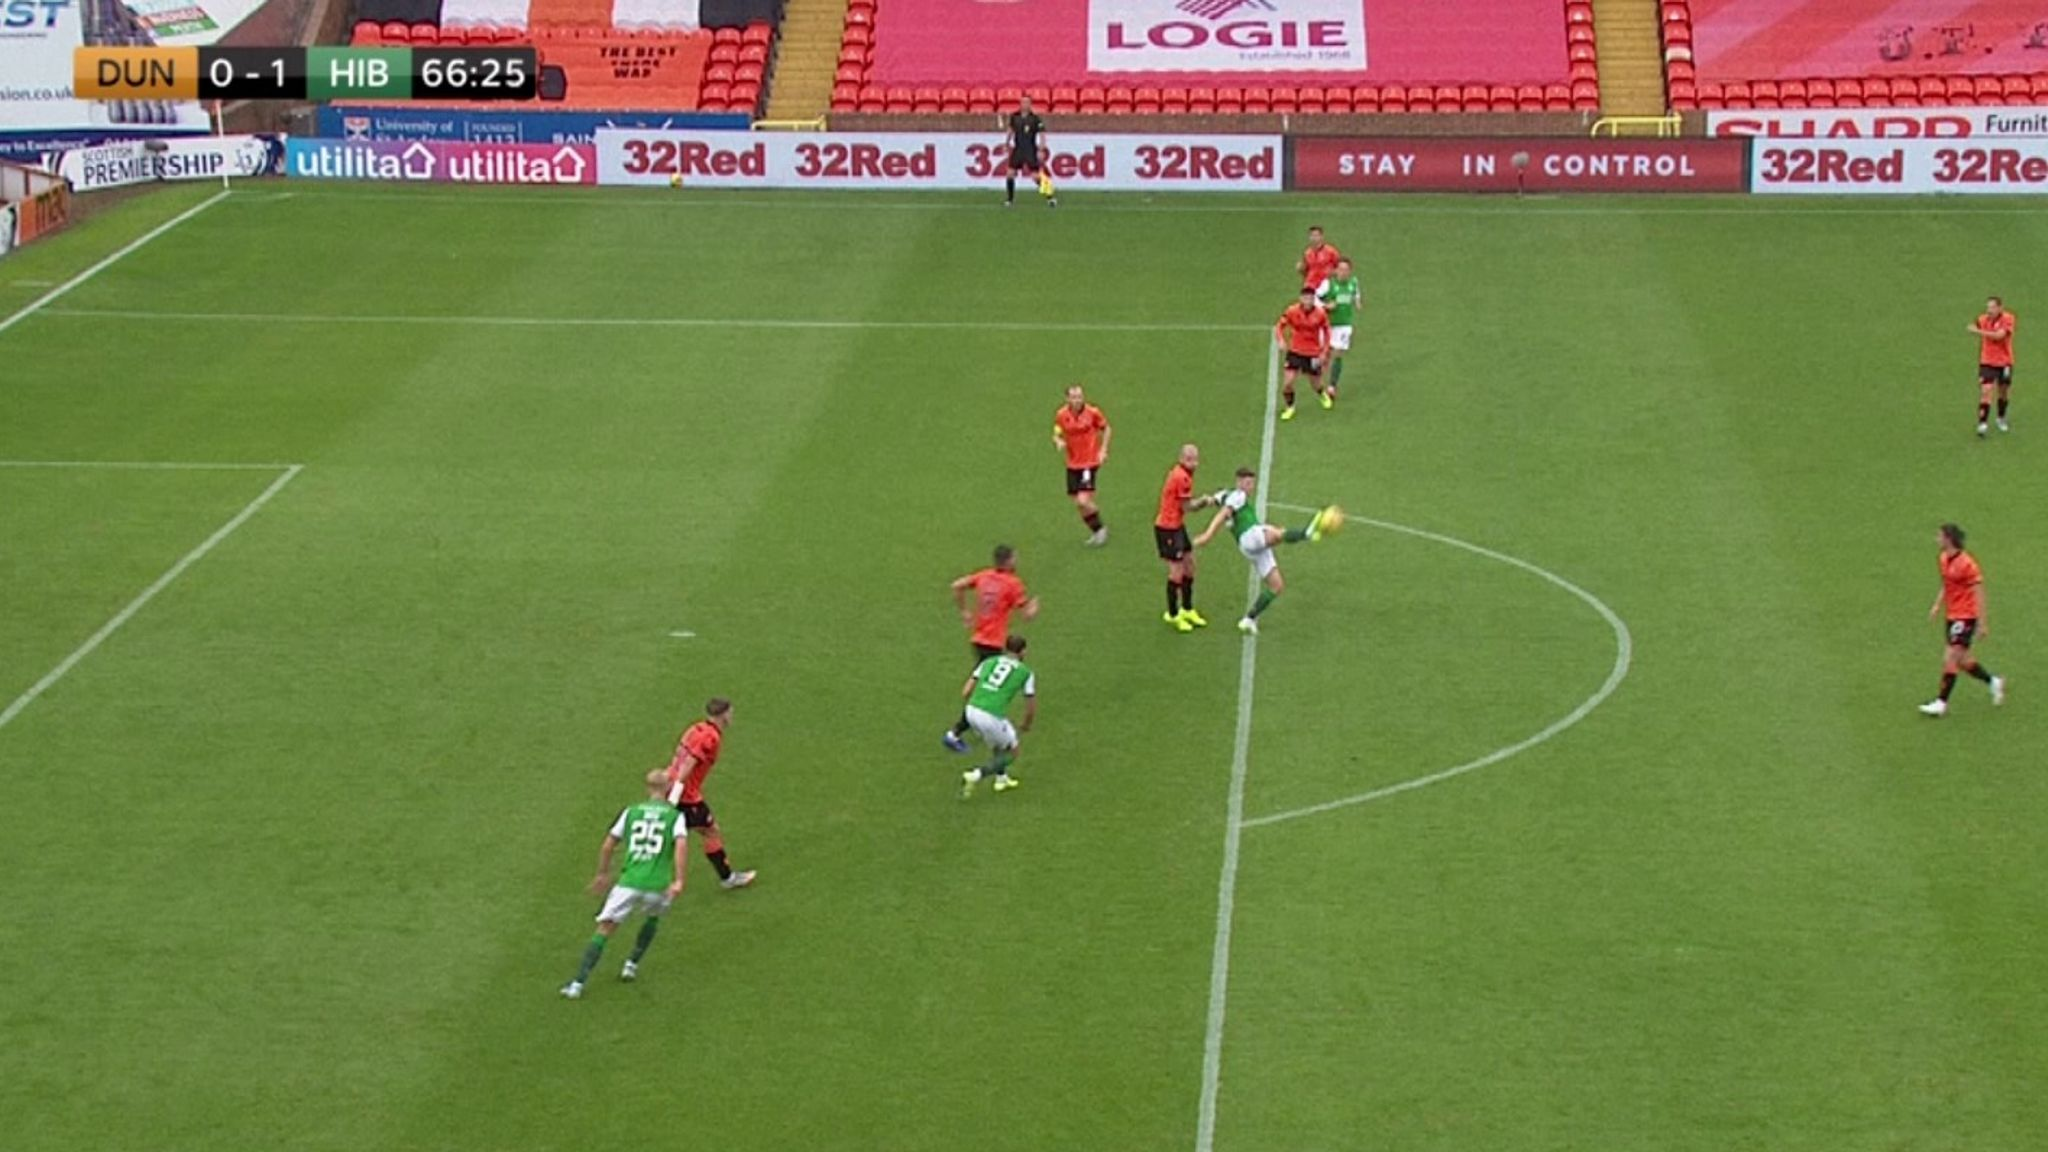 Replays show Doig was offside in the build-up to the only goal